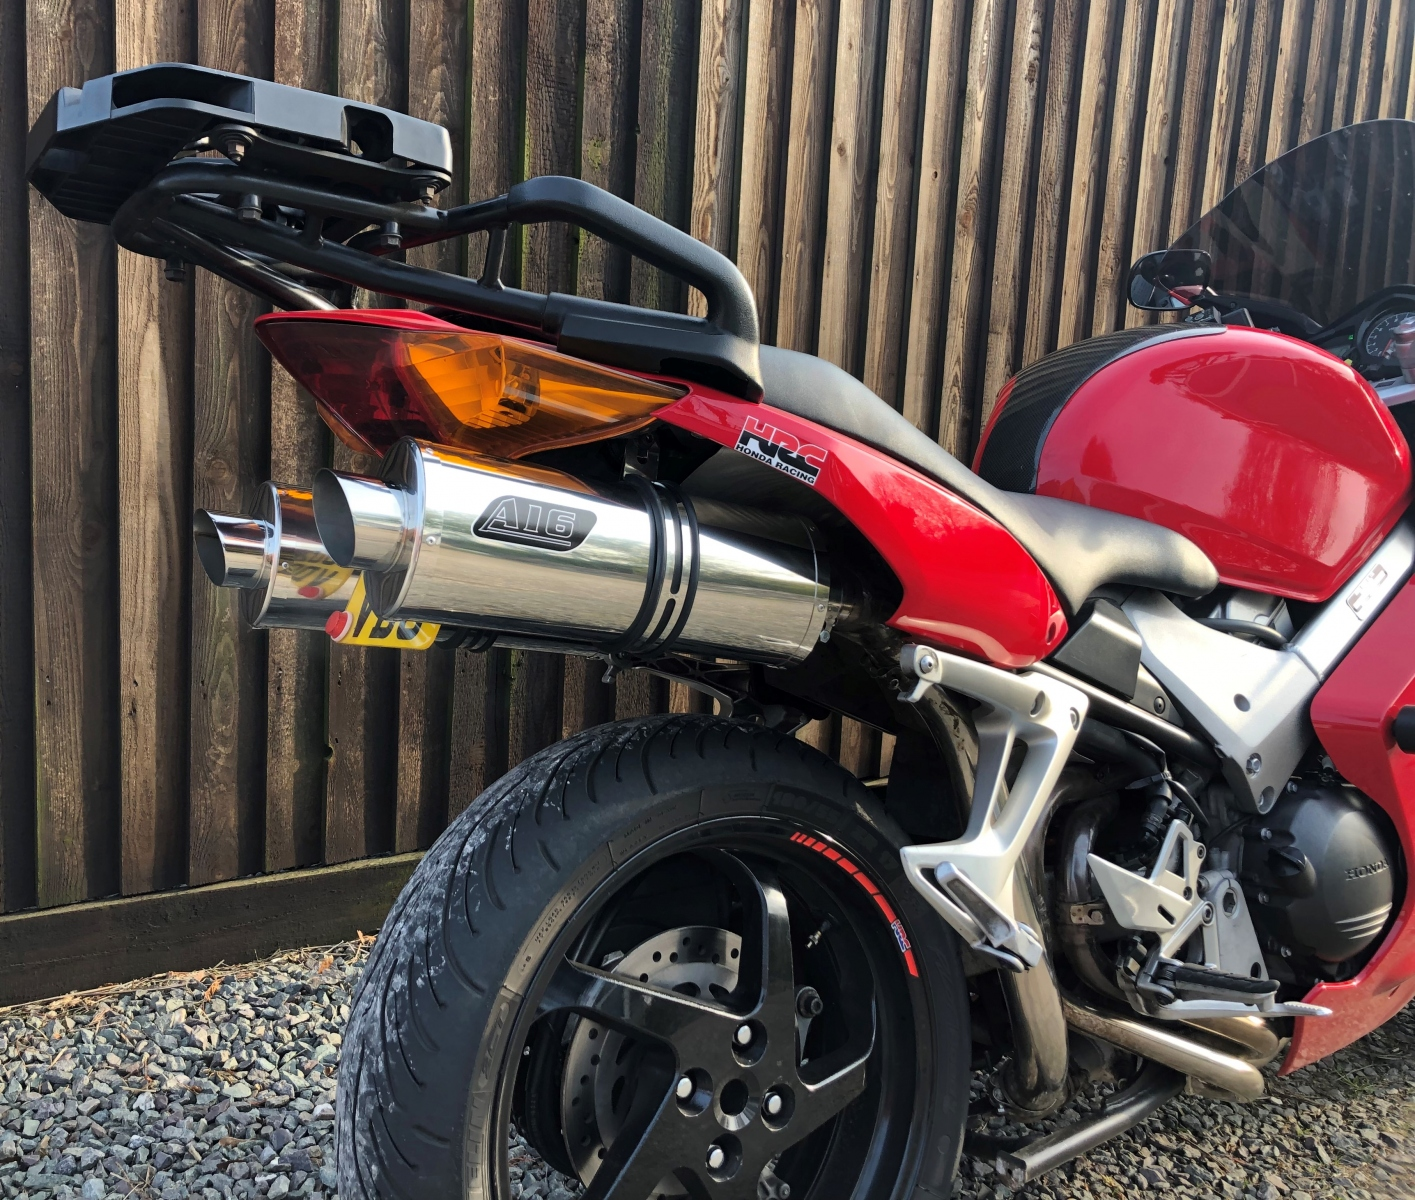 """Honda VFR800 V-Tec 2002-2008<p>A16 Road Legal Stainless Exhausts with Polished Slashcut Outlets</p><br/><br/><a href=""""https://a16roadnracesupplies.co.uk/product/a16-honda-exhausts/"""">Buy now!</a>"""